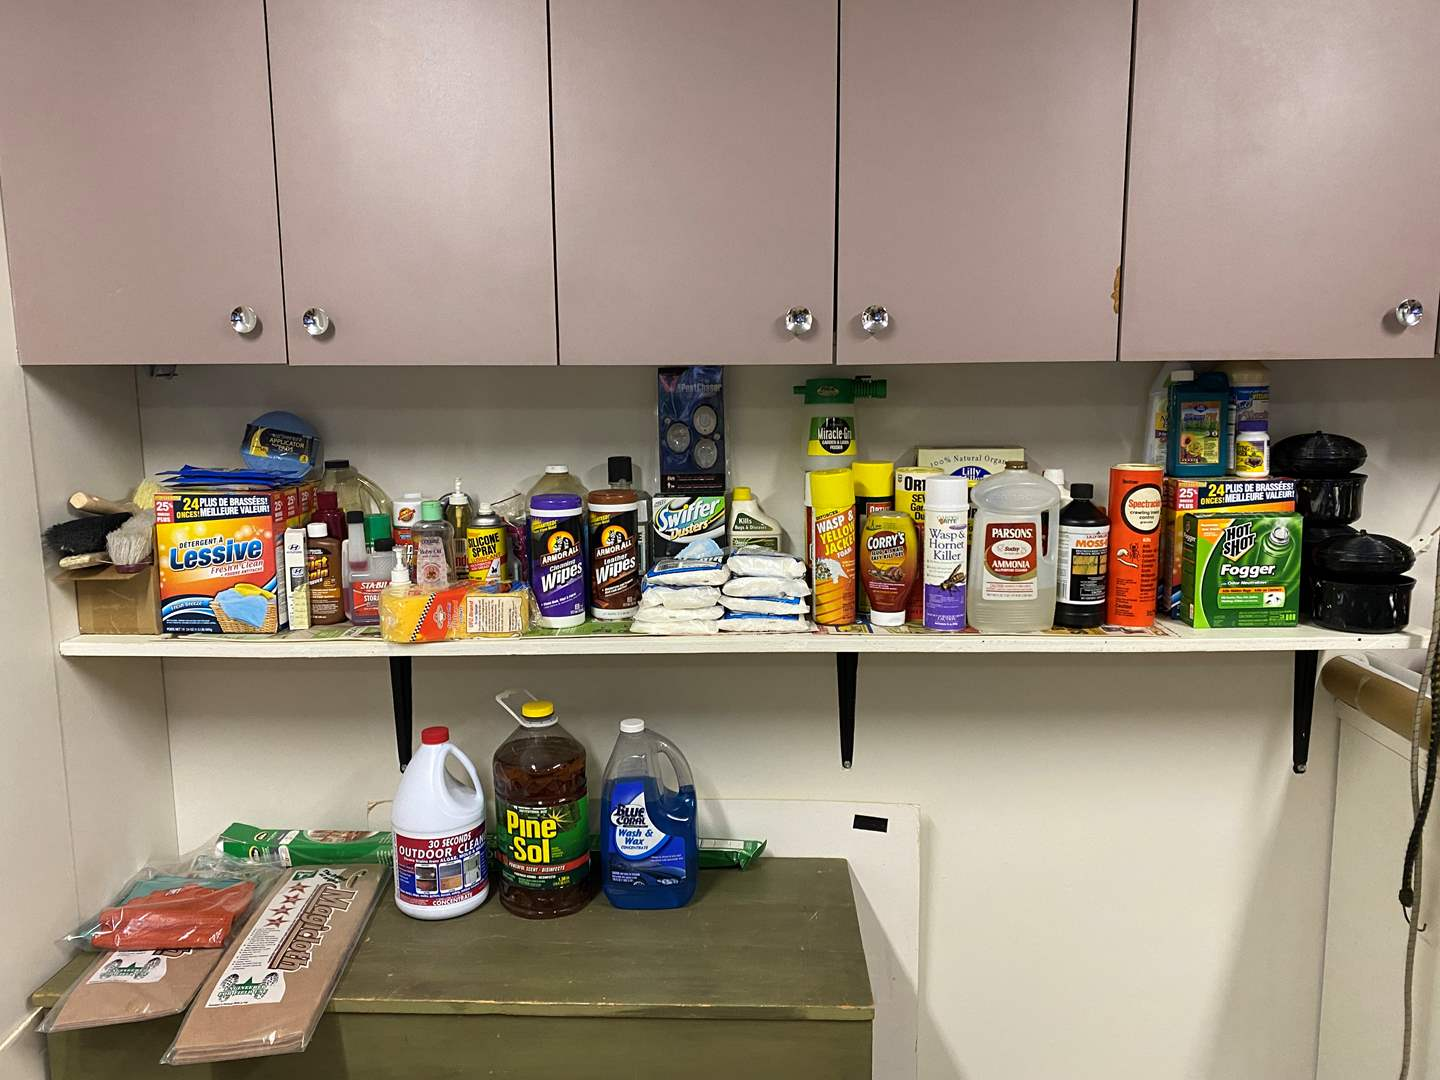 Lot # 254 - Household Chemicals, Garden Fertilizers, Cleaning Supplies & More (main image)